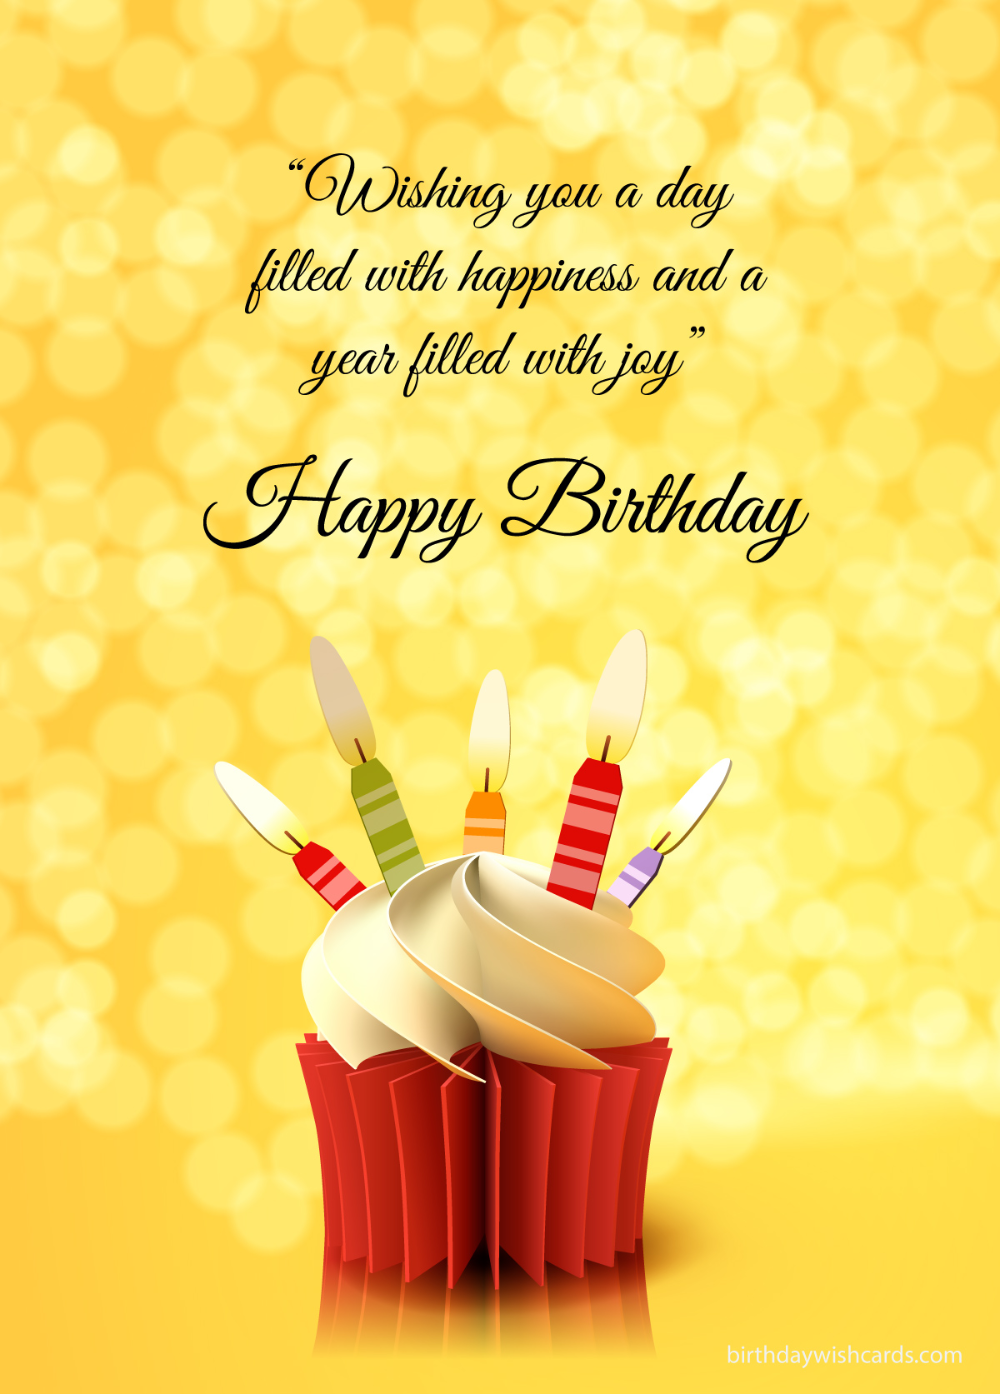 Birthday Wish Cards Happy Birthday Image Card Cupcake Birthday Cards Happy Birt Happy Birthday Greetings Friends Happy Birthday Cards Happy Birthday Messages